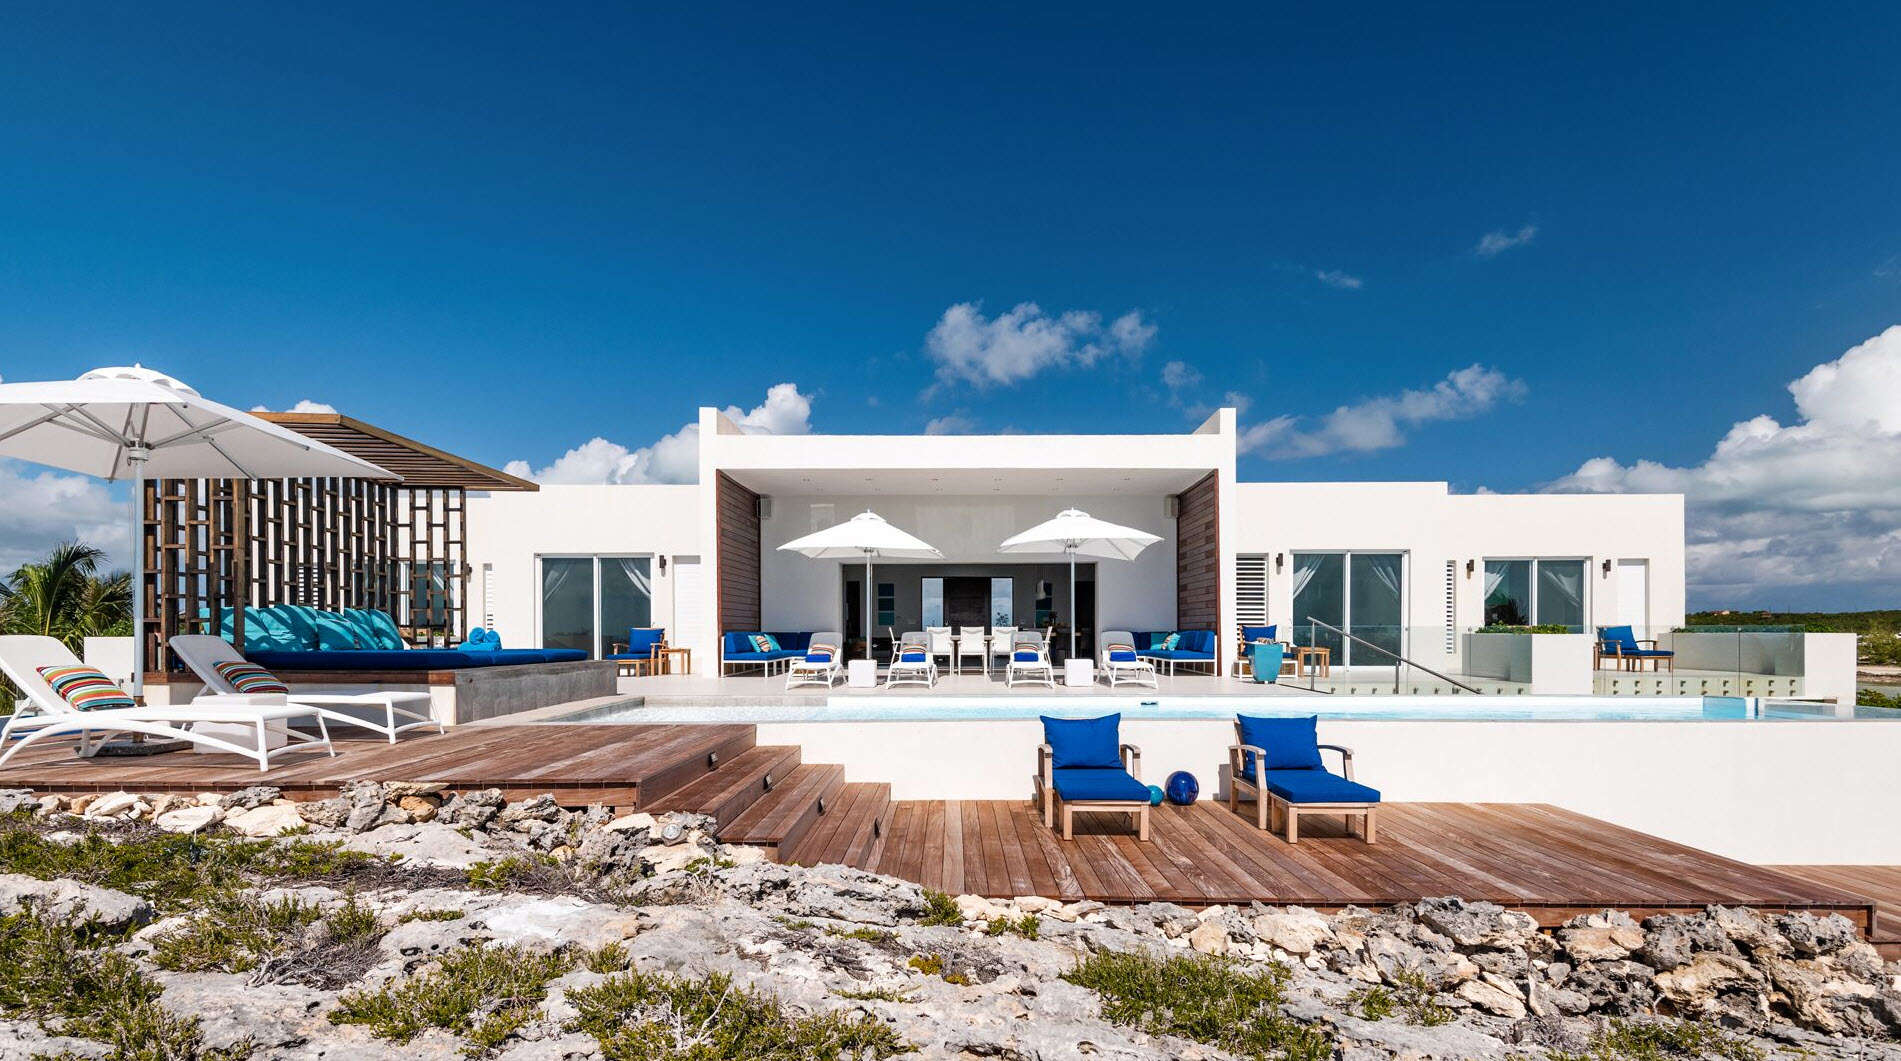 Luxury villa rentals caribbean - Turks and caicos - Providenciales - Turtle tail - Tip of the Tail Villa - Image 1/15